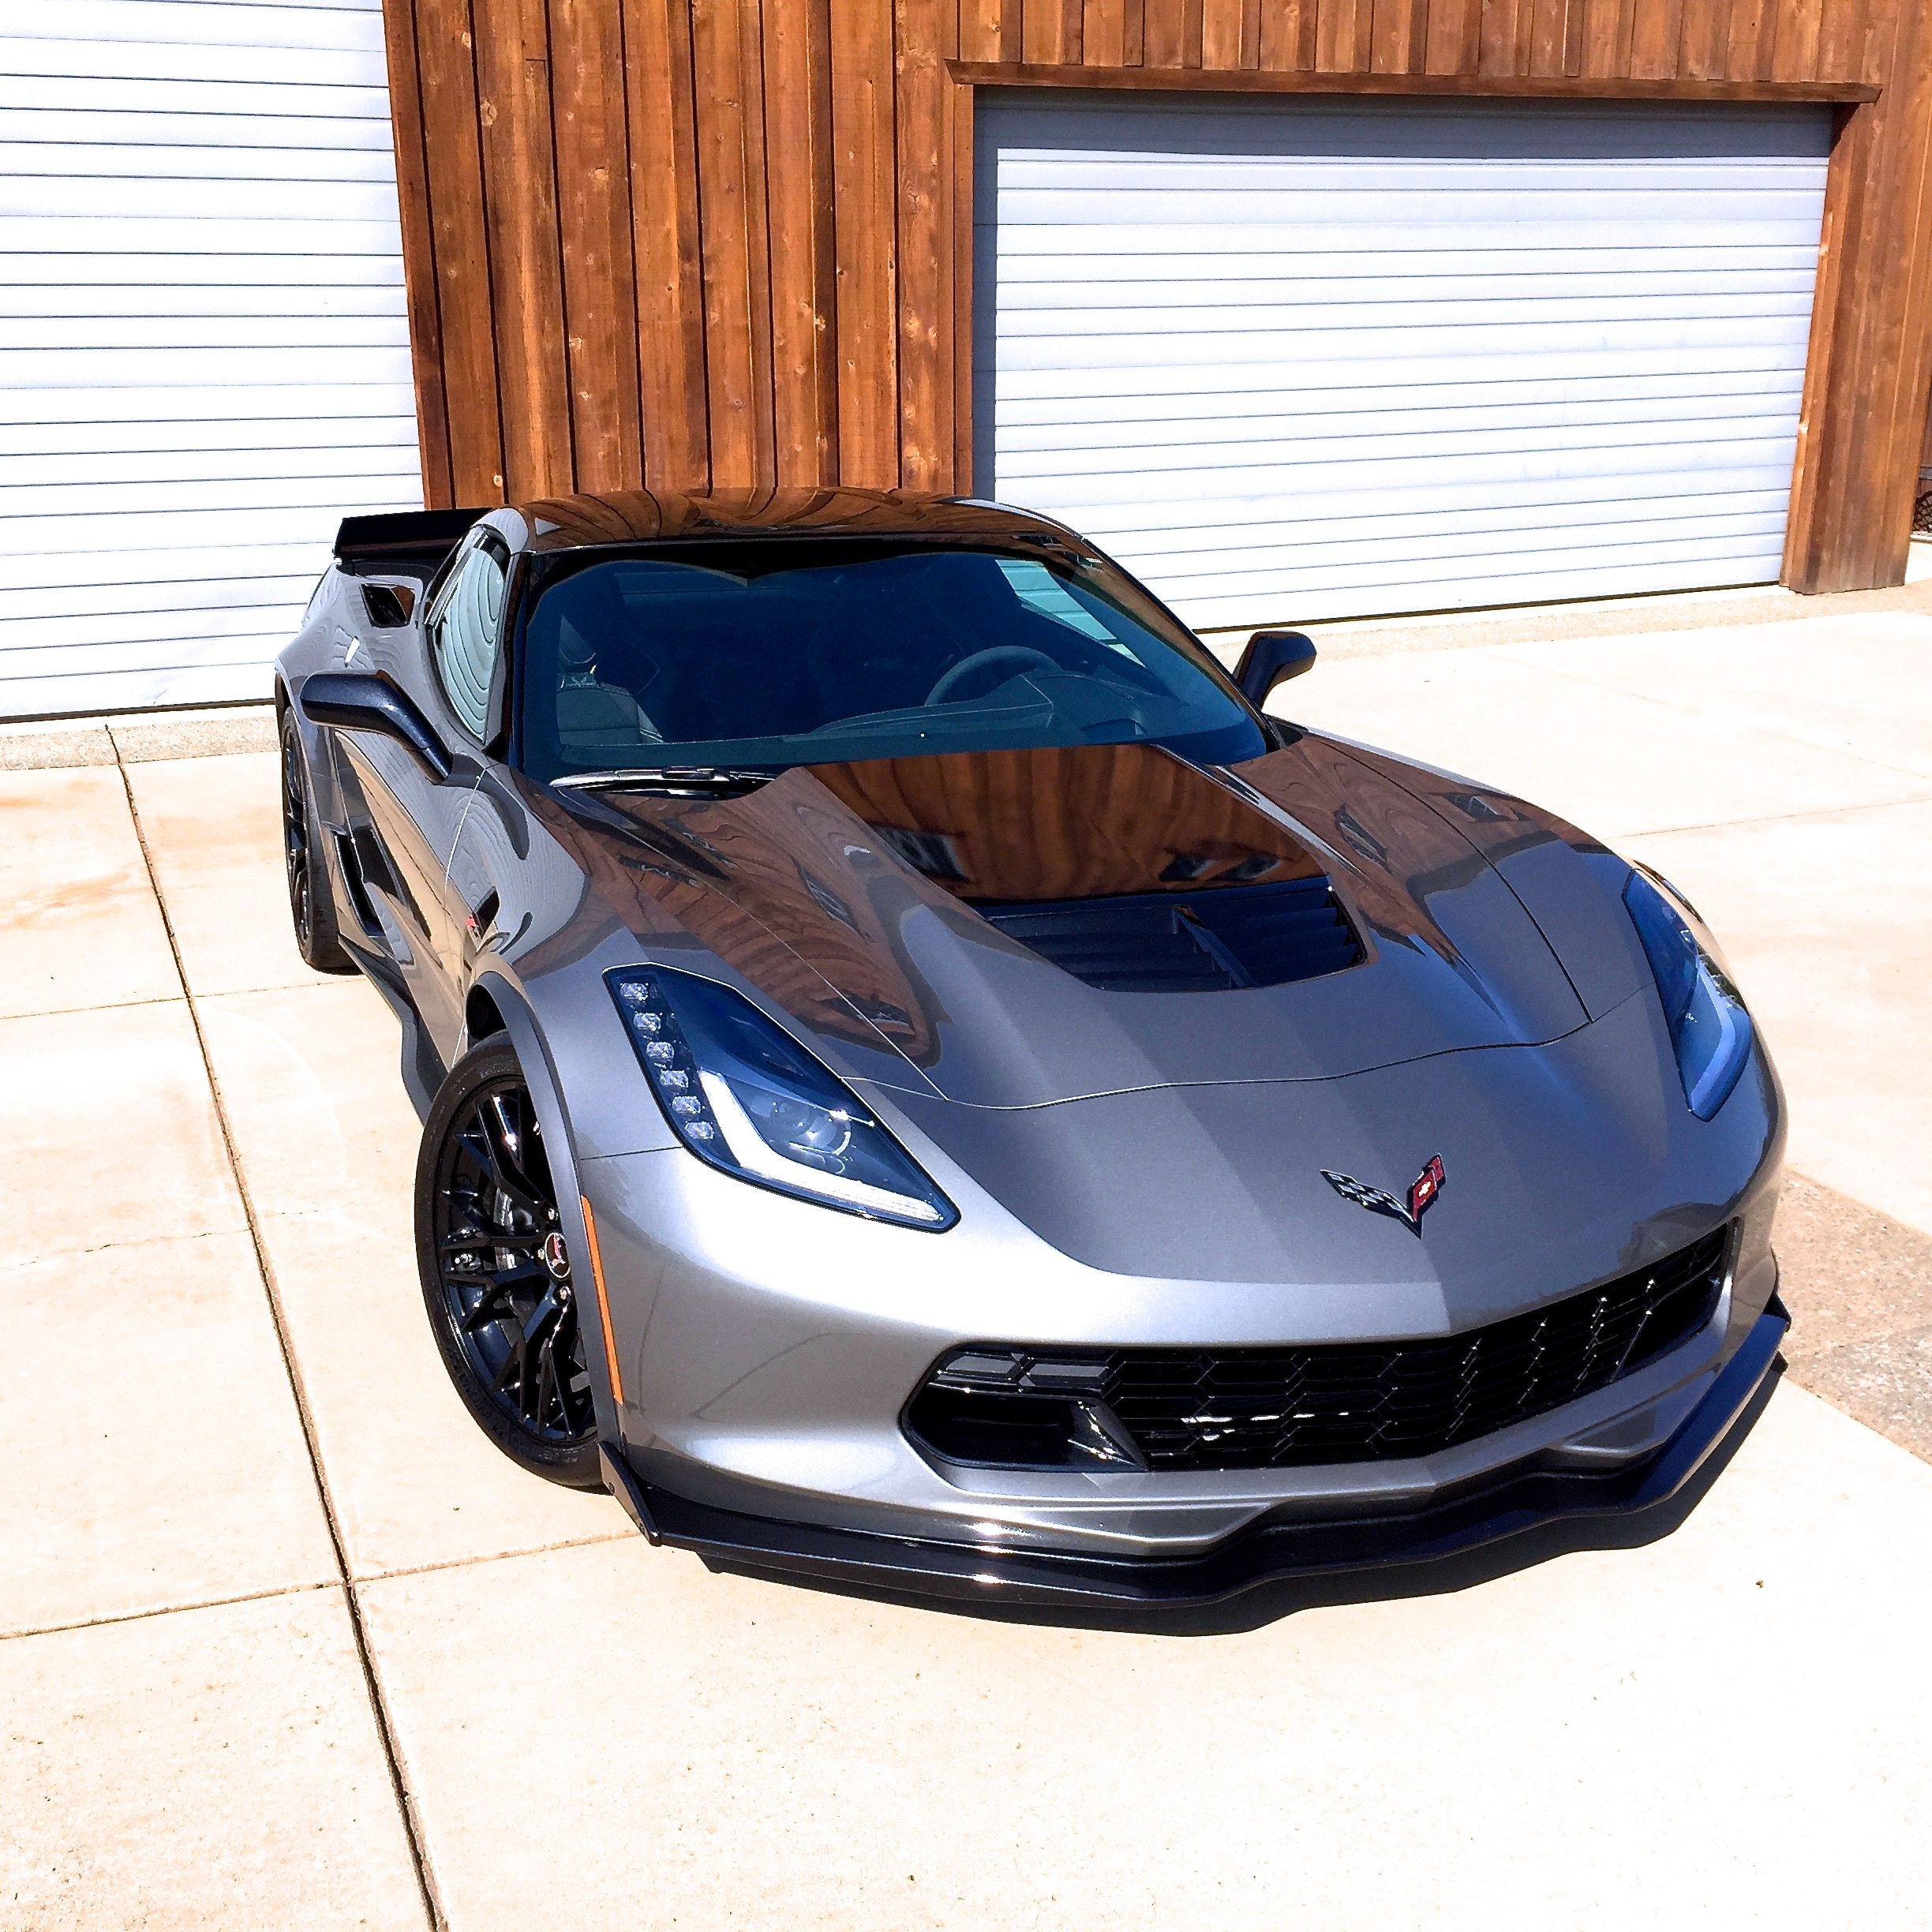 The Shark Grey C7 Z06/Z07 A8 Corvette Stingray